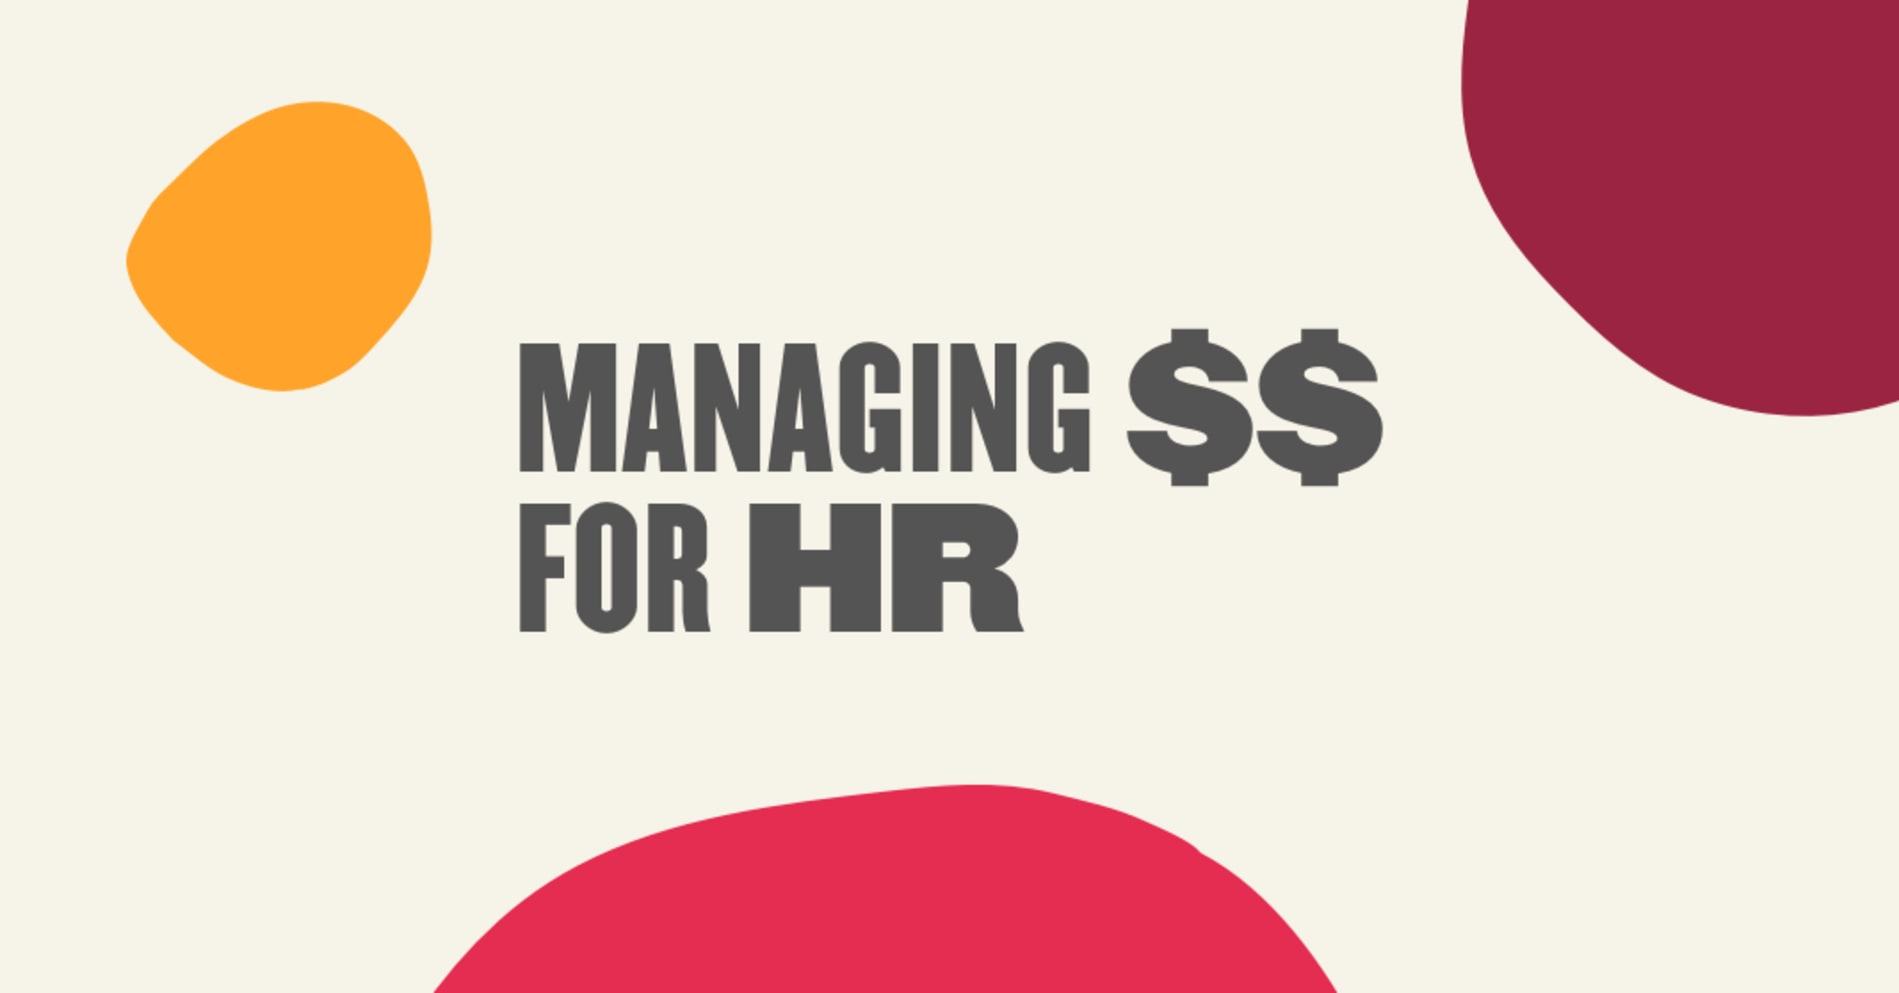 Beyond personnel: top HR budgeting strategies - Managing-for-HR-Blog-post.png